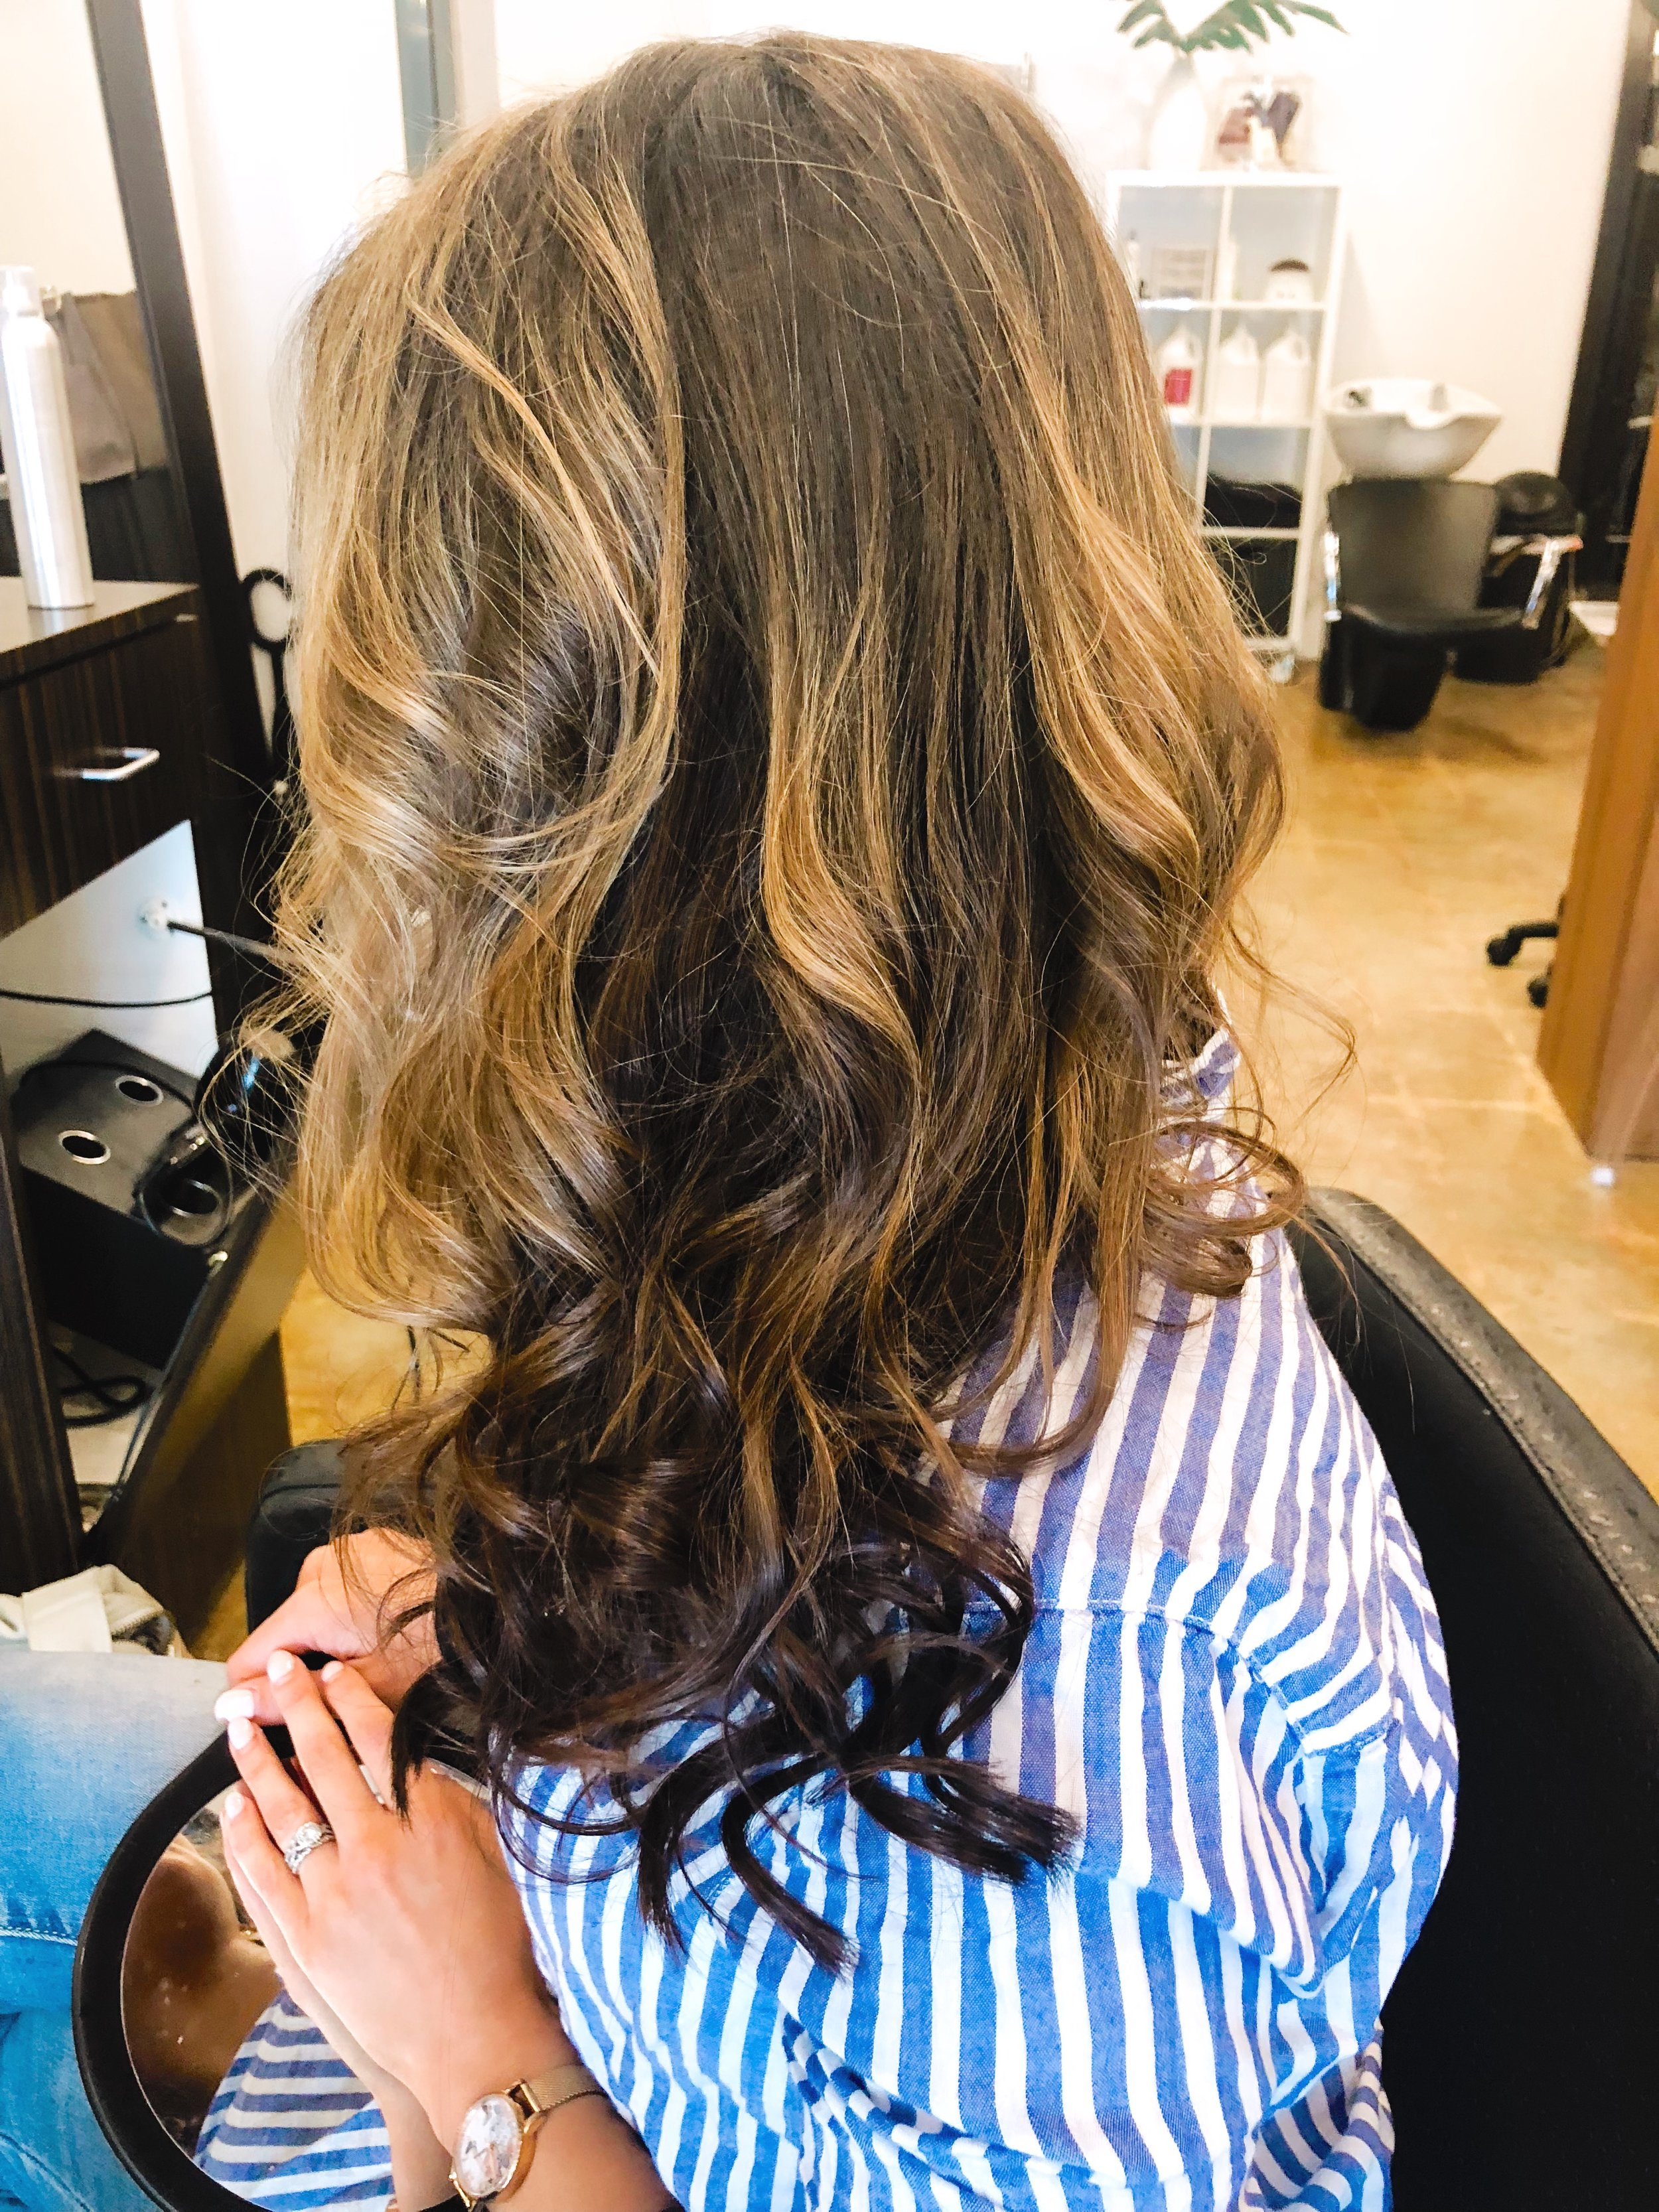 Brenna's Natural Beaded Row Extensions